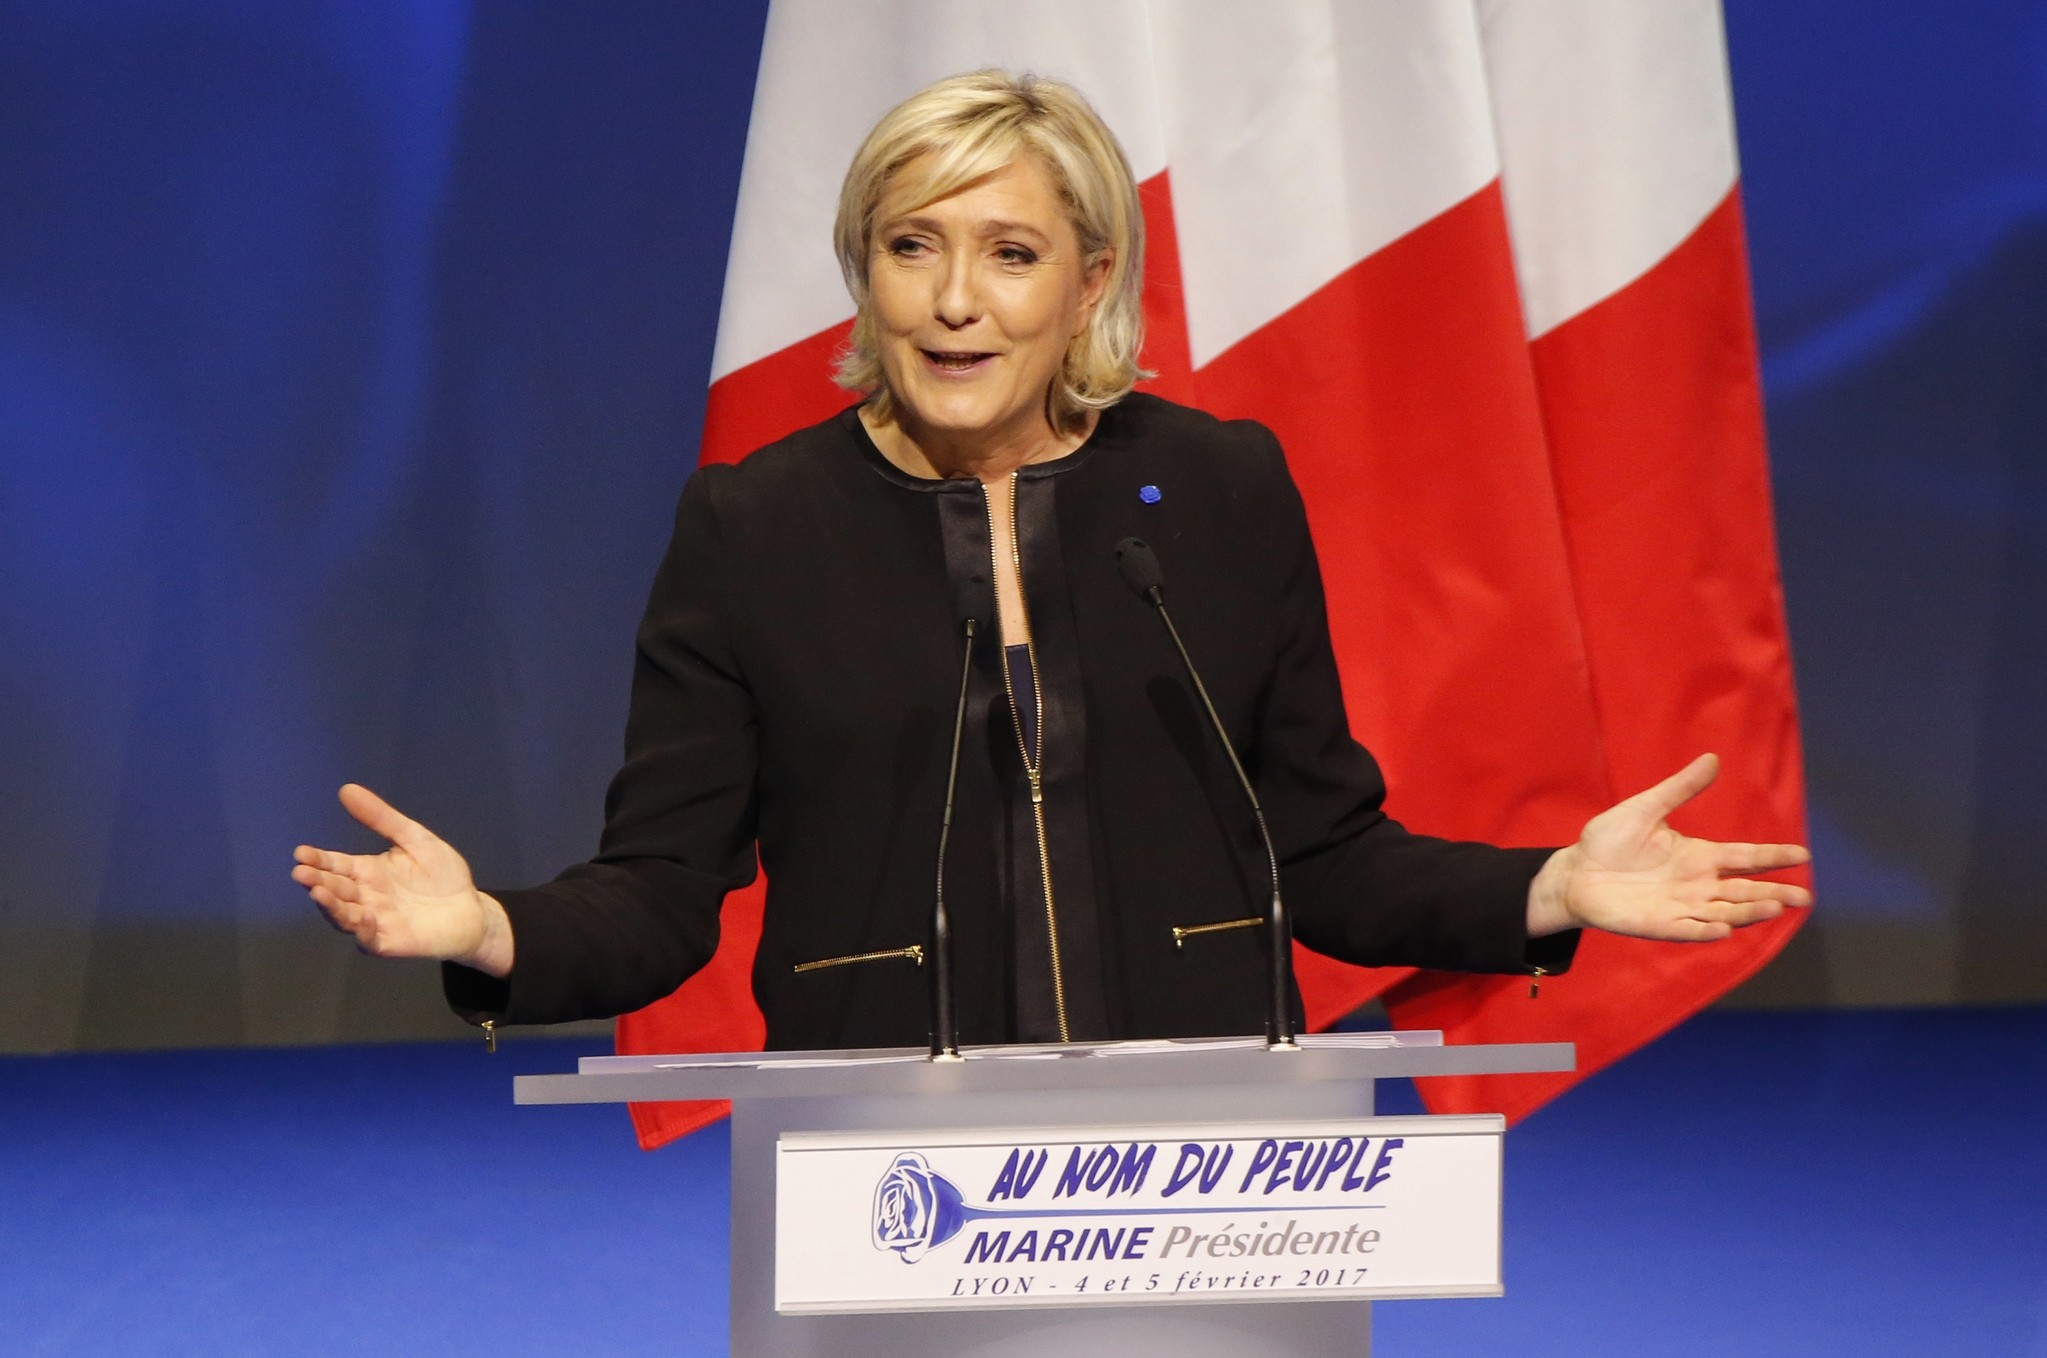 Presidential candidate Marine Le Pen gestures as she speaks during a conference in Lyon, Feb. 5, 2017. (AP Photo)